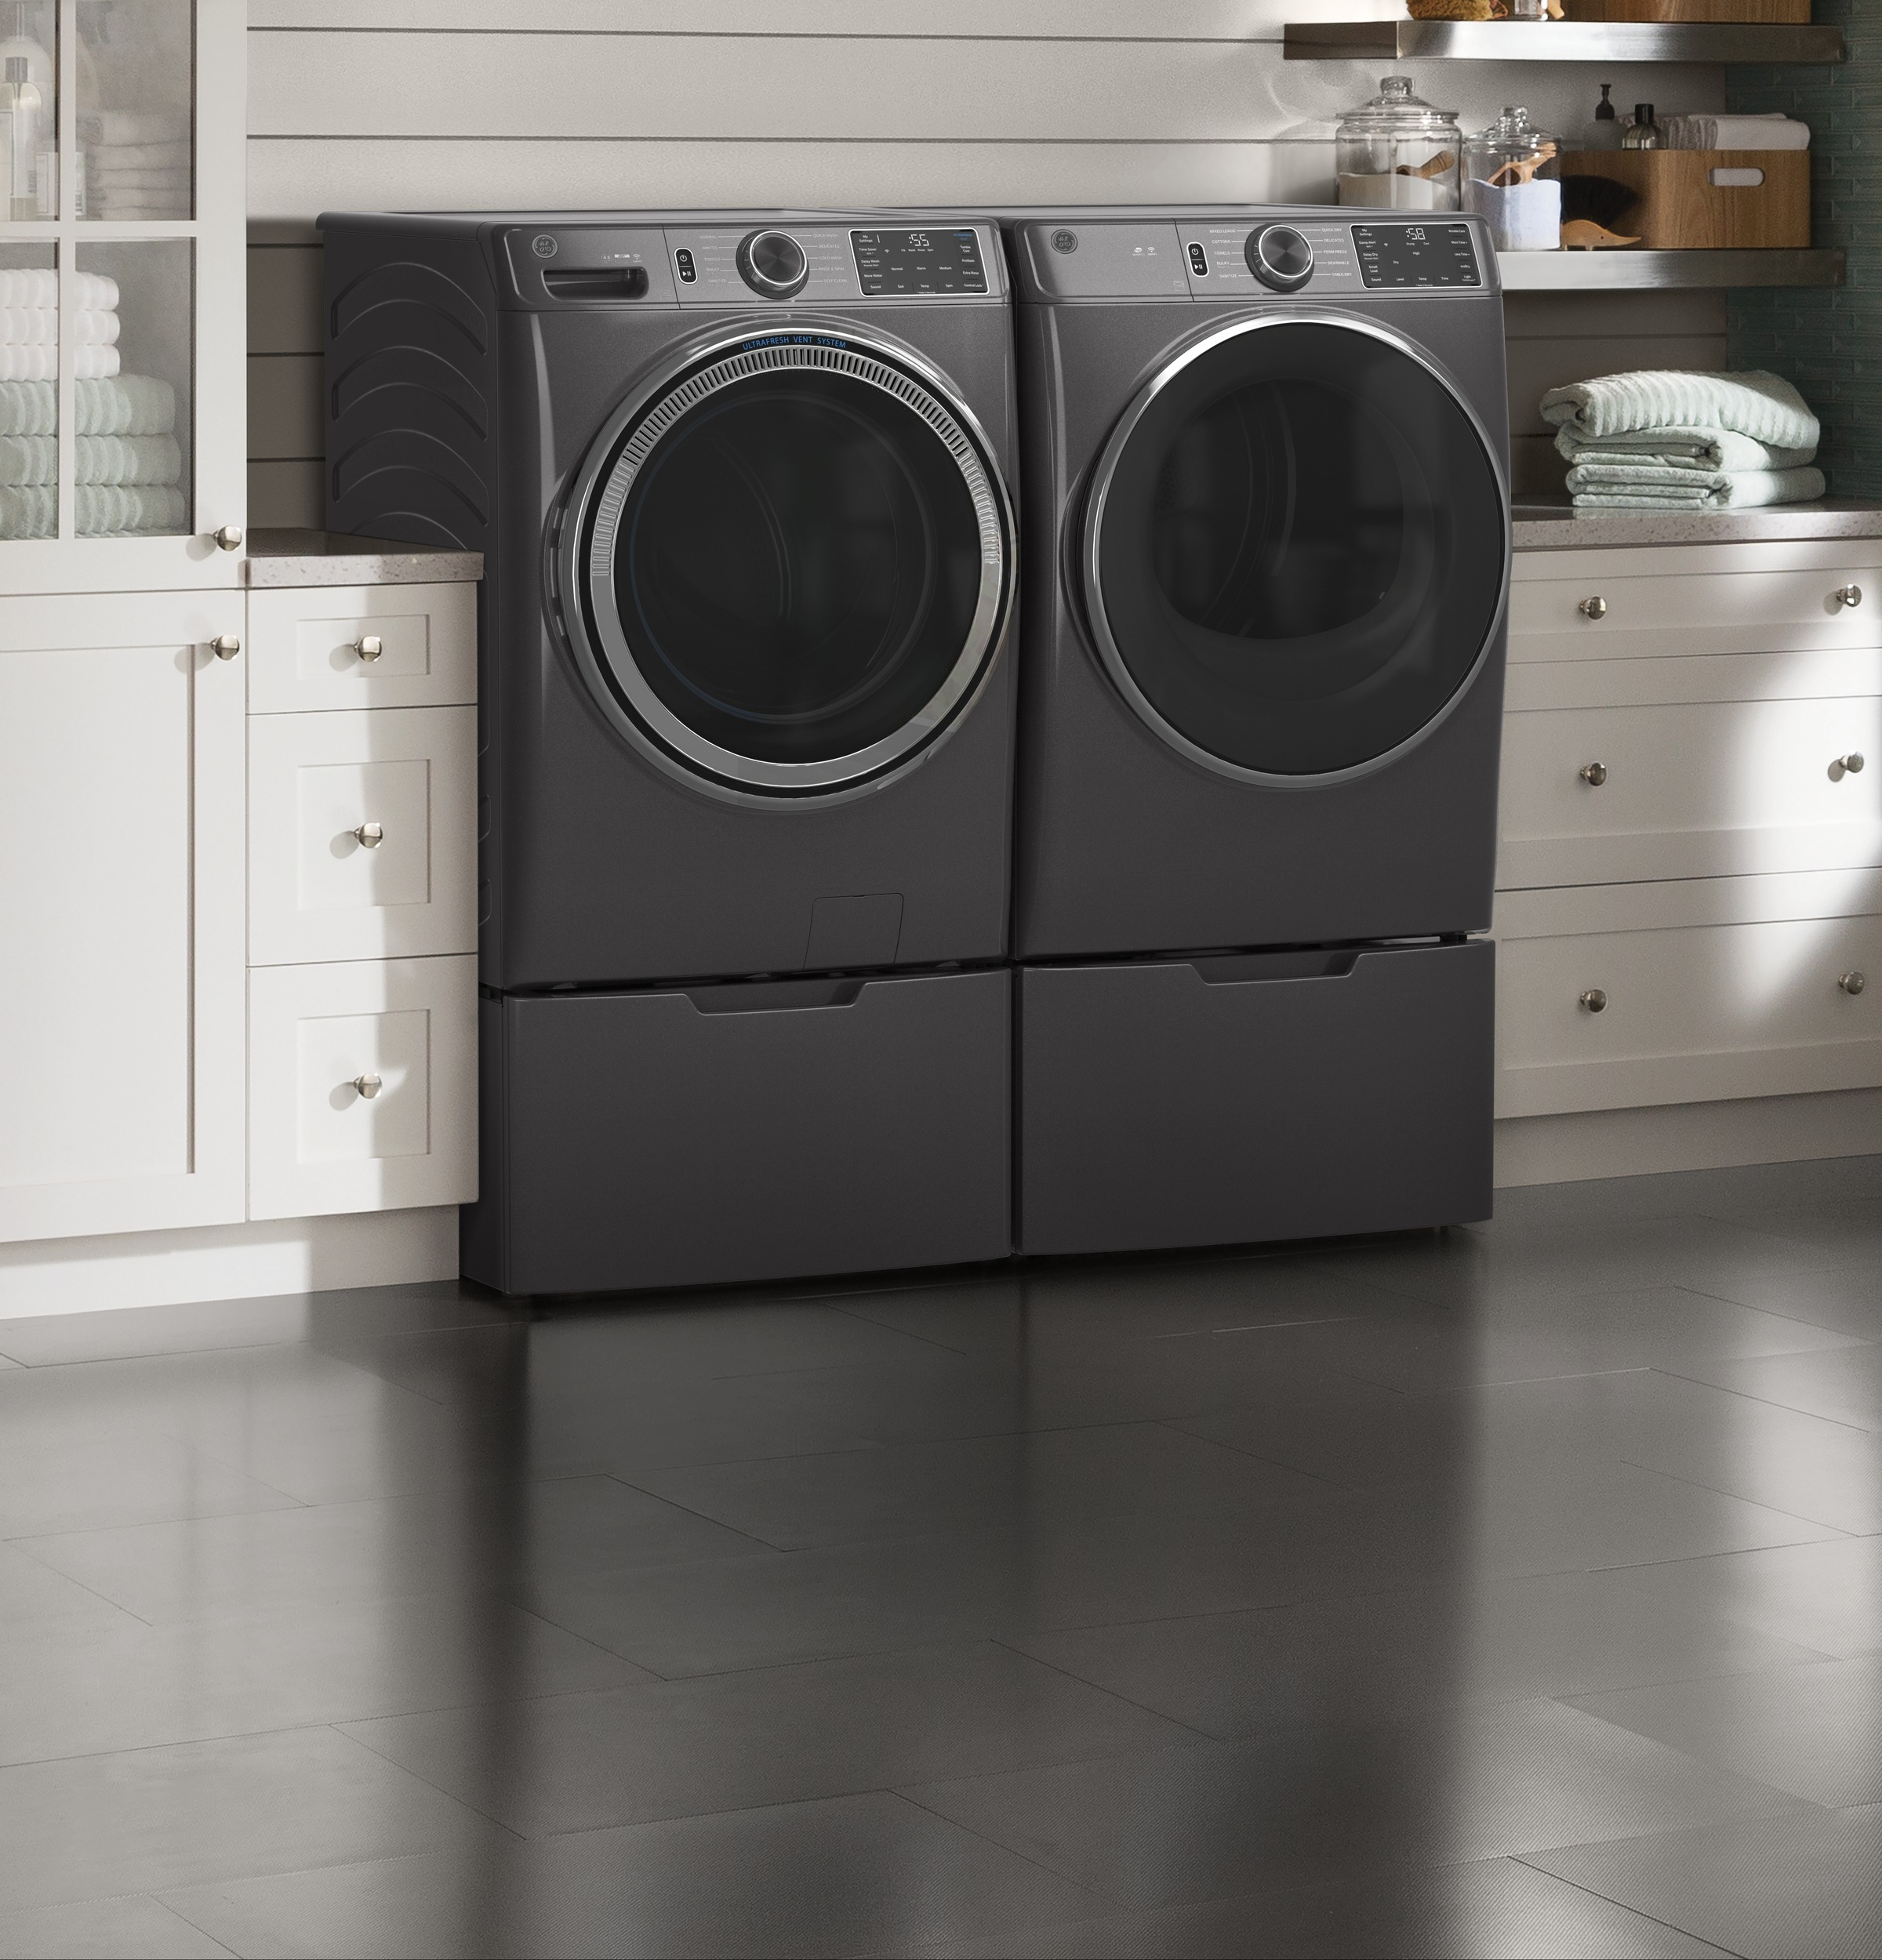 Model: GFD55ESPNDG | GE GE® 7.8 cu. ft. Capacity Smart Front Load Electric Dryer with Sanitize Cycle